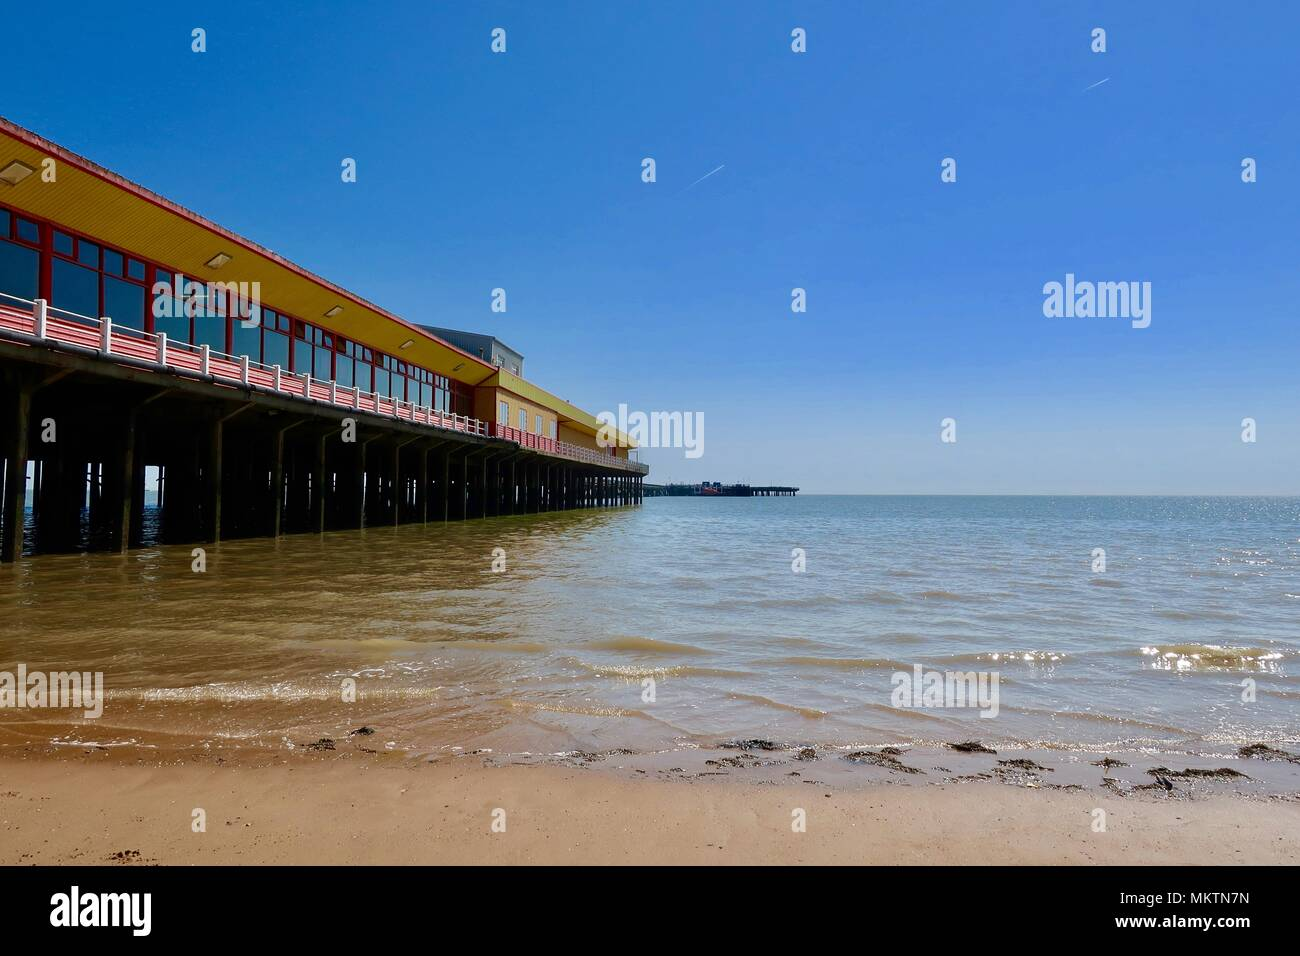 Pier at Walton on the Naze, Essex. Hot sunny spring day May 2018. - Stock Image